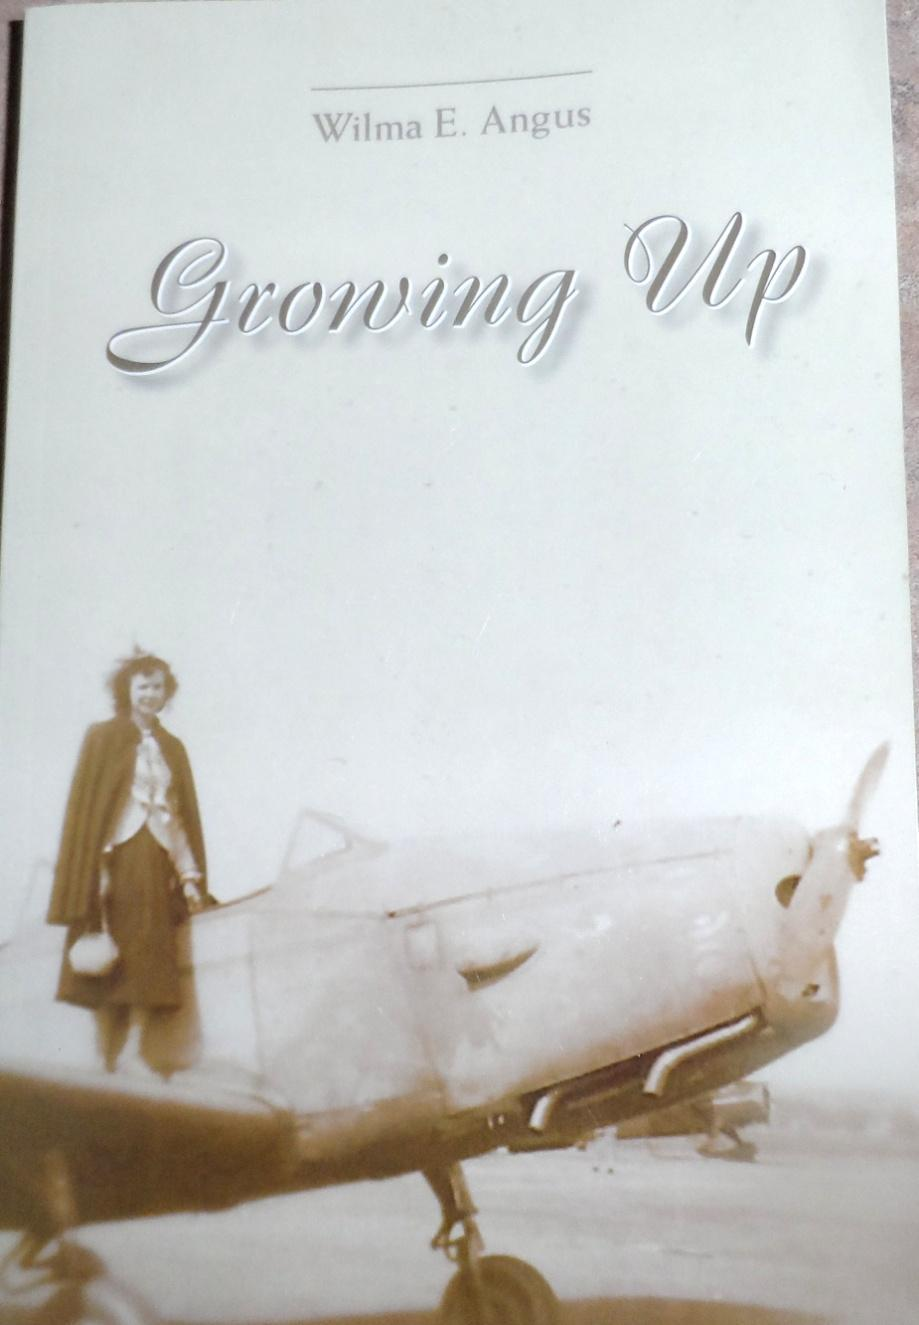 Growing Up Published 2013 by Wilma E. Angus This is Wilma`s second book, and captures stories from her early life.